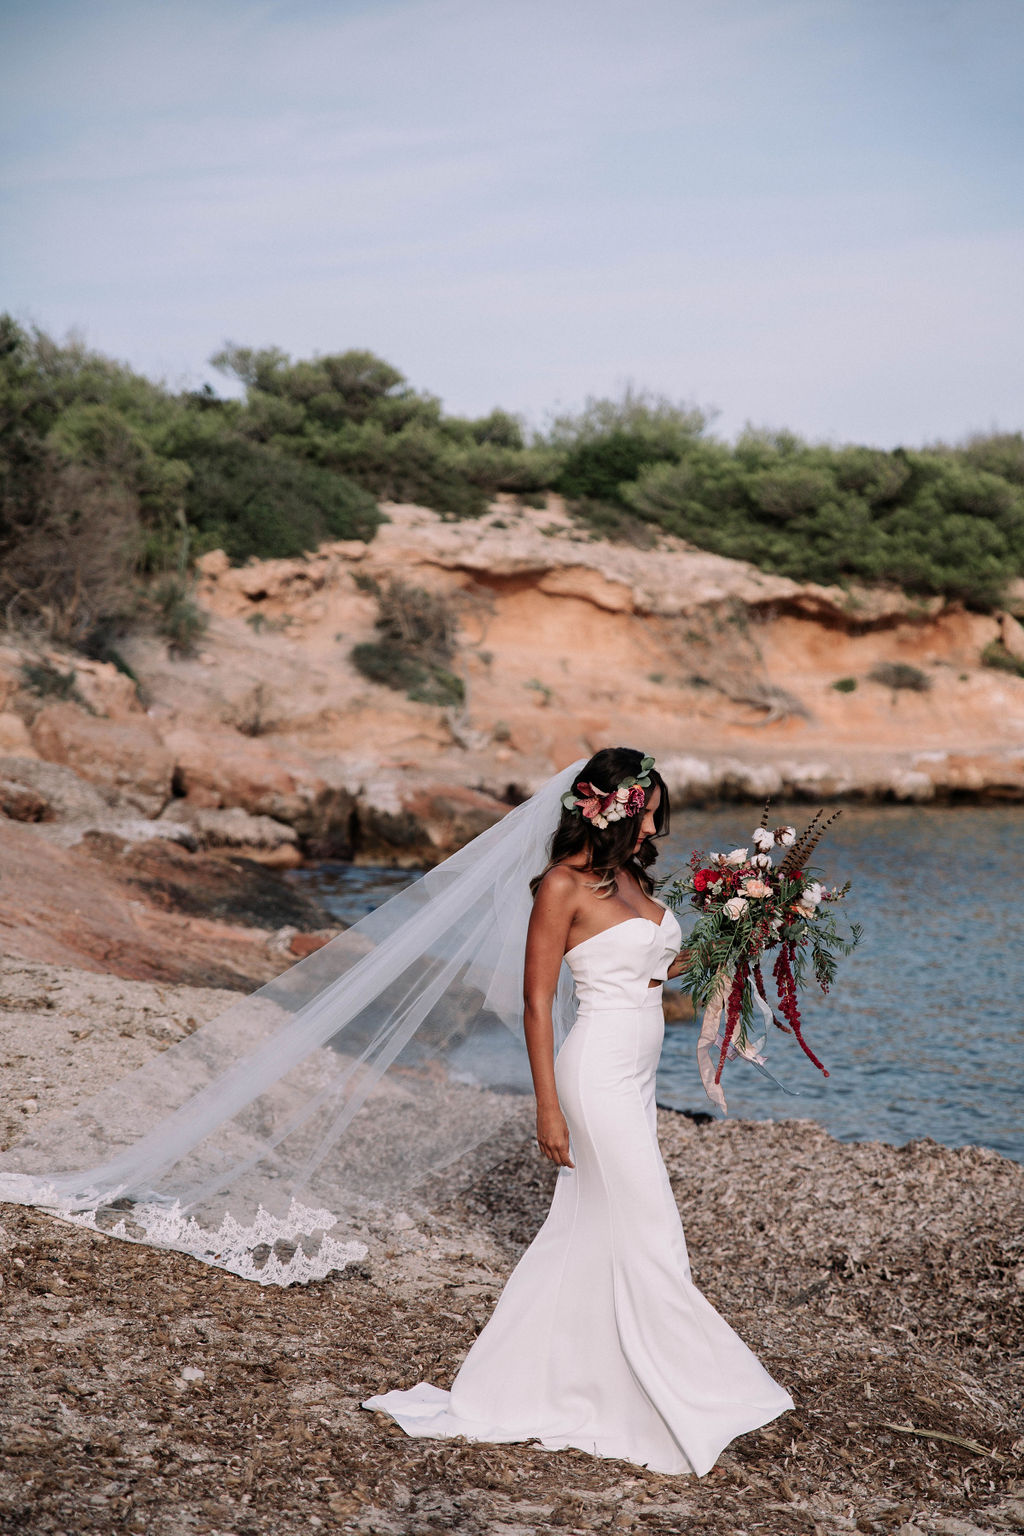 Cathedral lace veil beach wedding